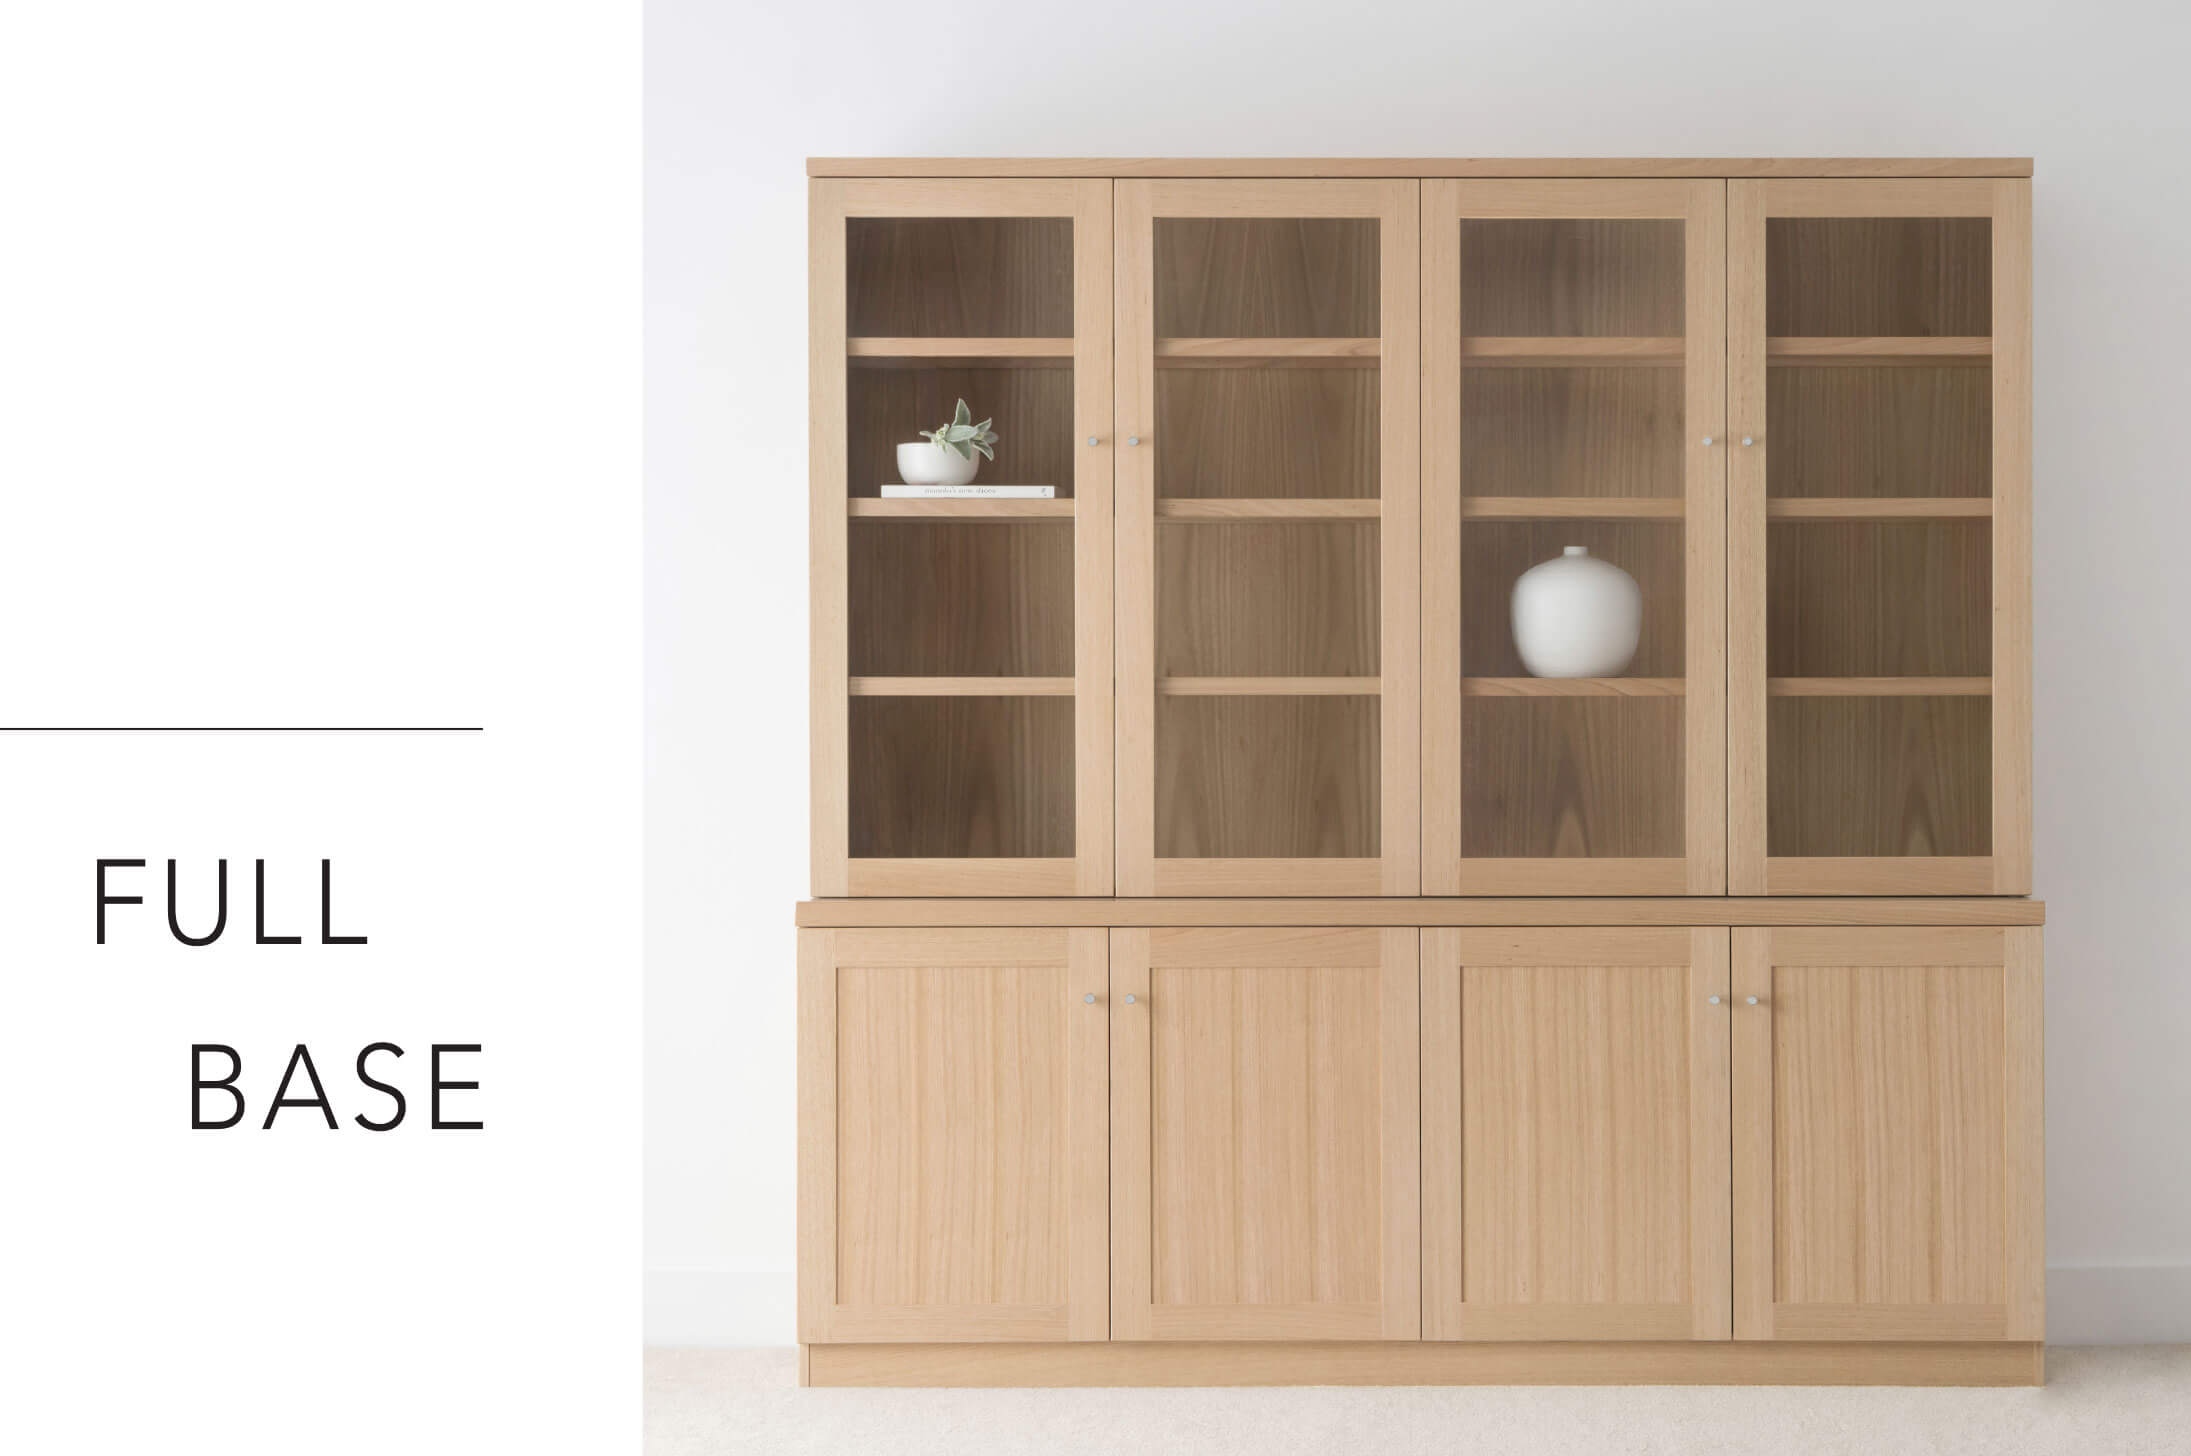 large timber wall unit made in oak with glass and timber doors and internal shelving